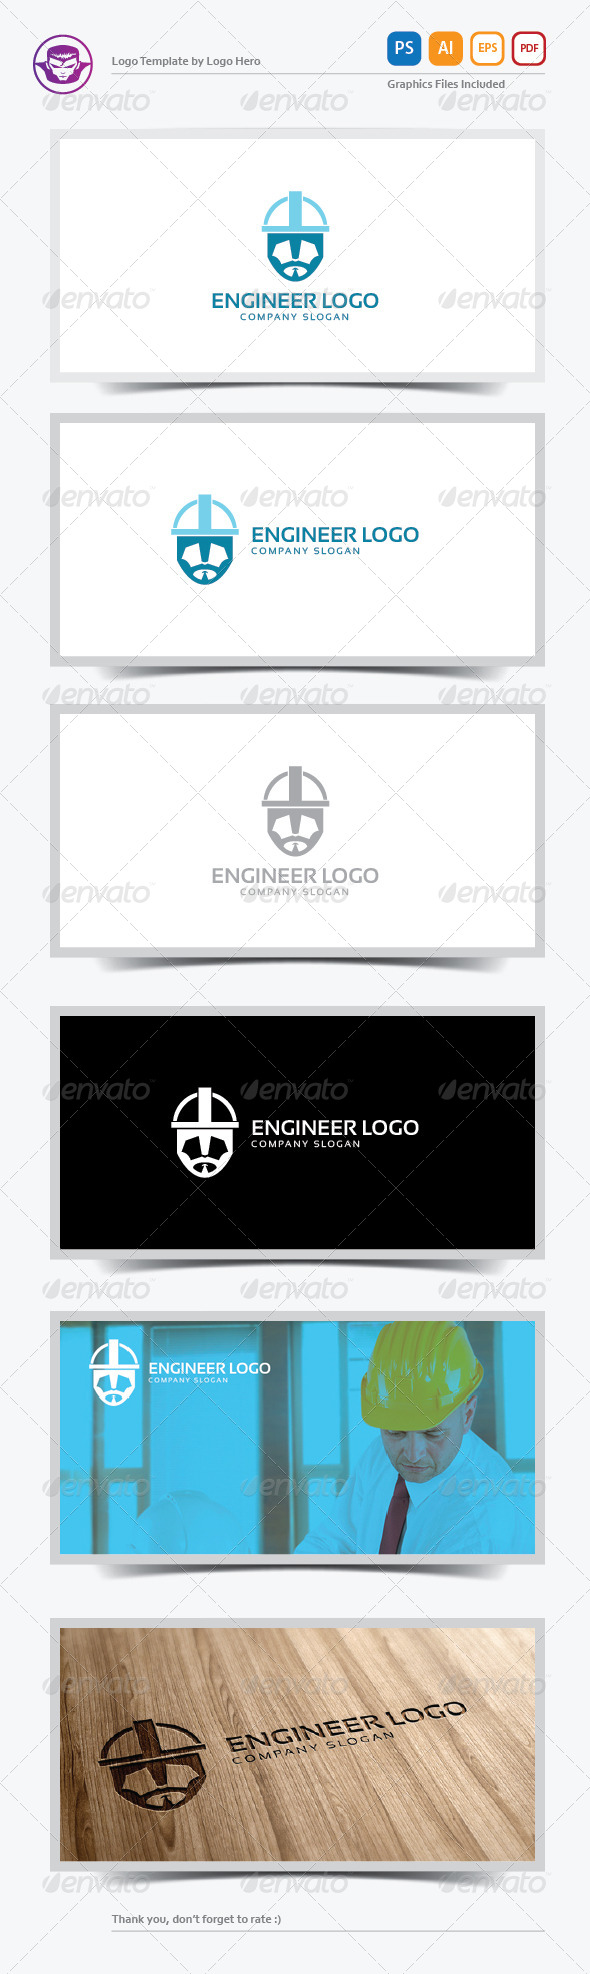 GraphicRiver Engineer Logo Template 6023460